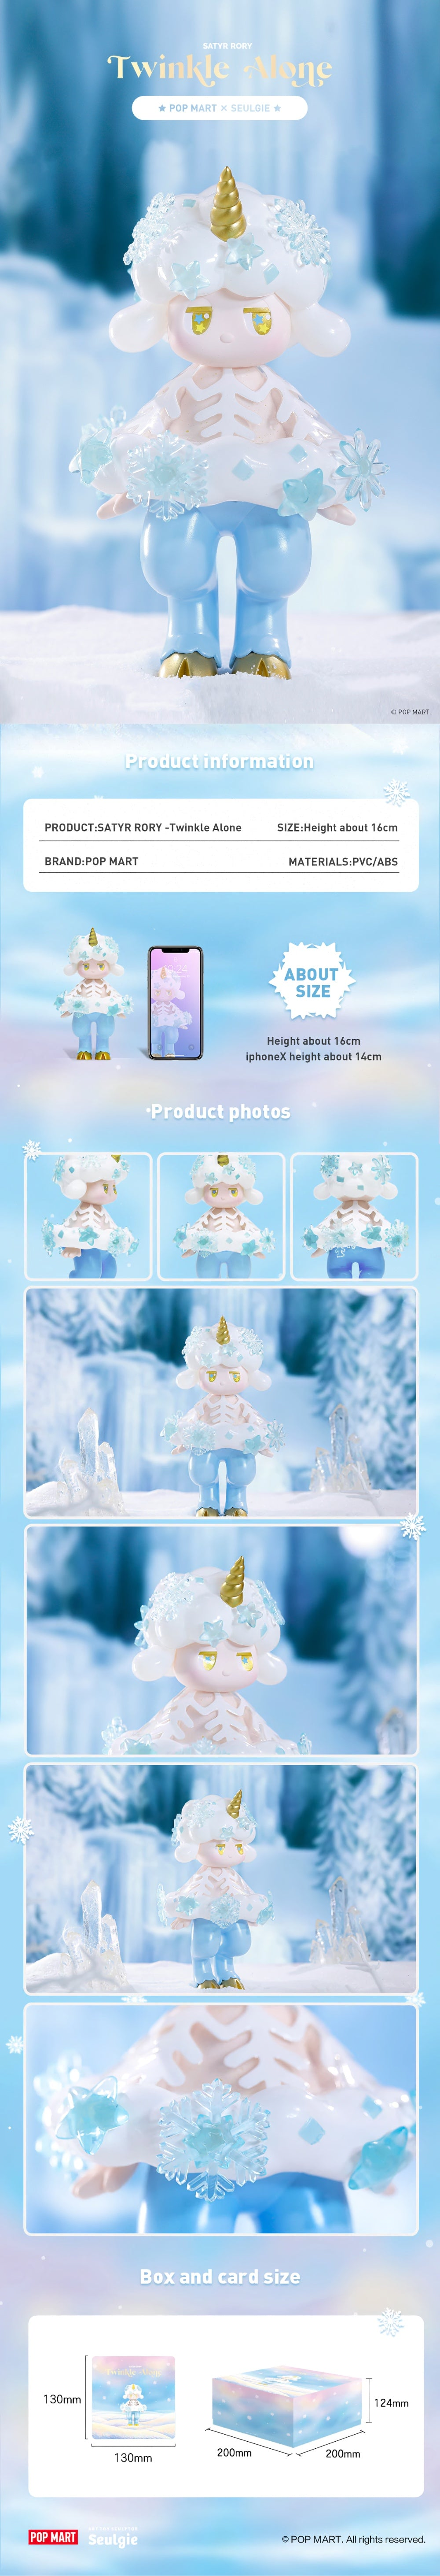 POP MART X Satyr Rory Twinkle Alone Collectible Figurine